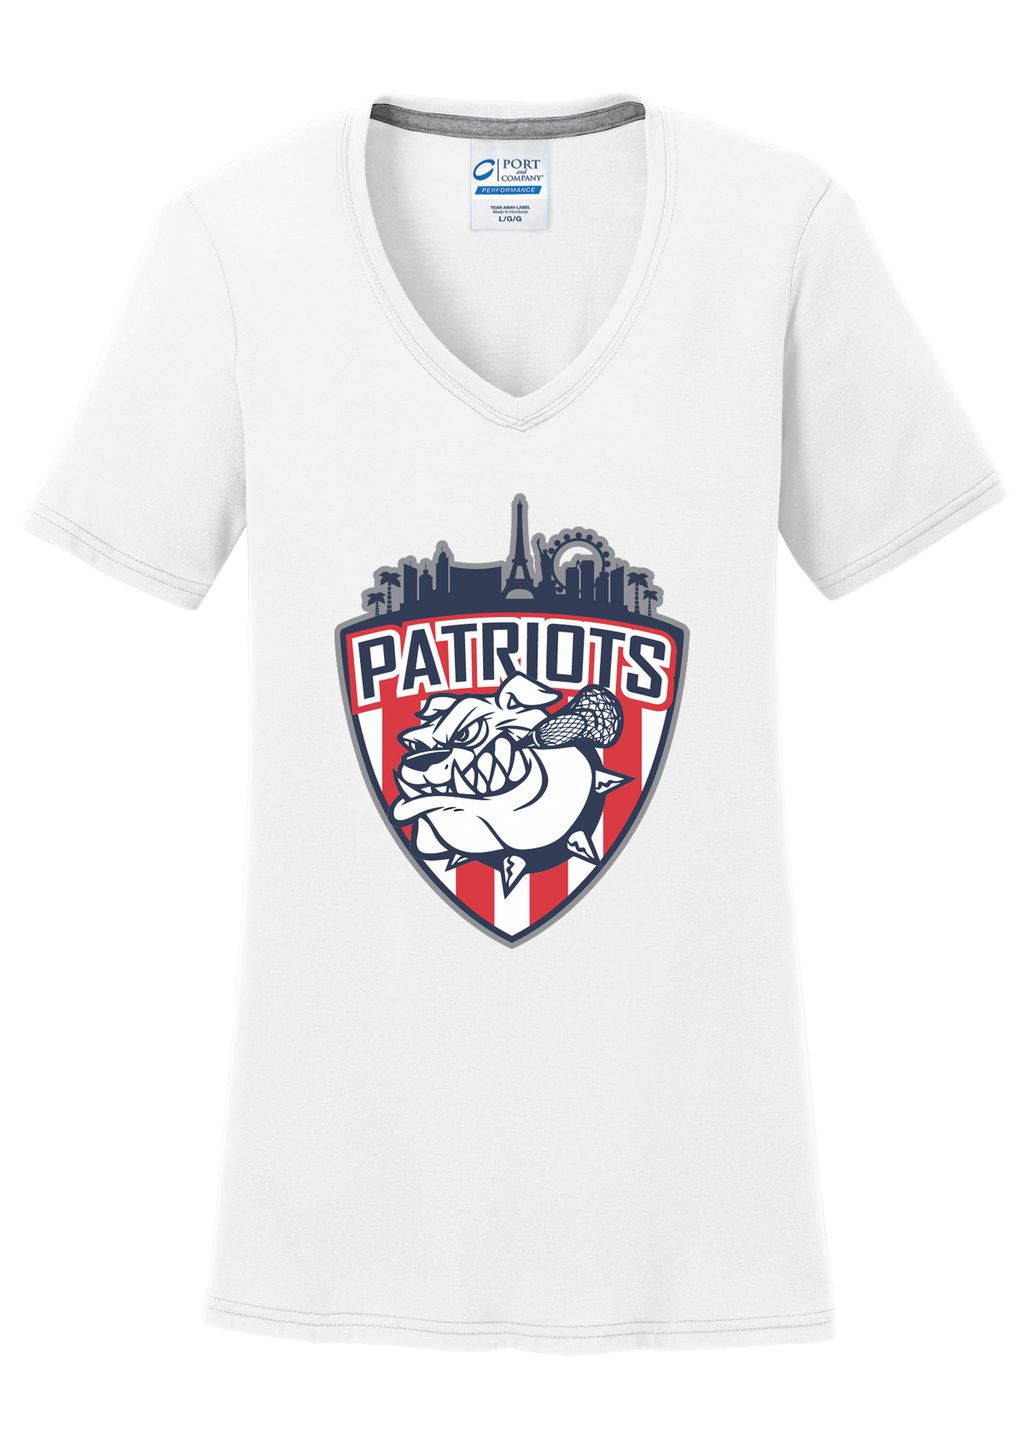 Las Vegas Patriots Women's White T-Shirt